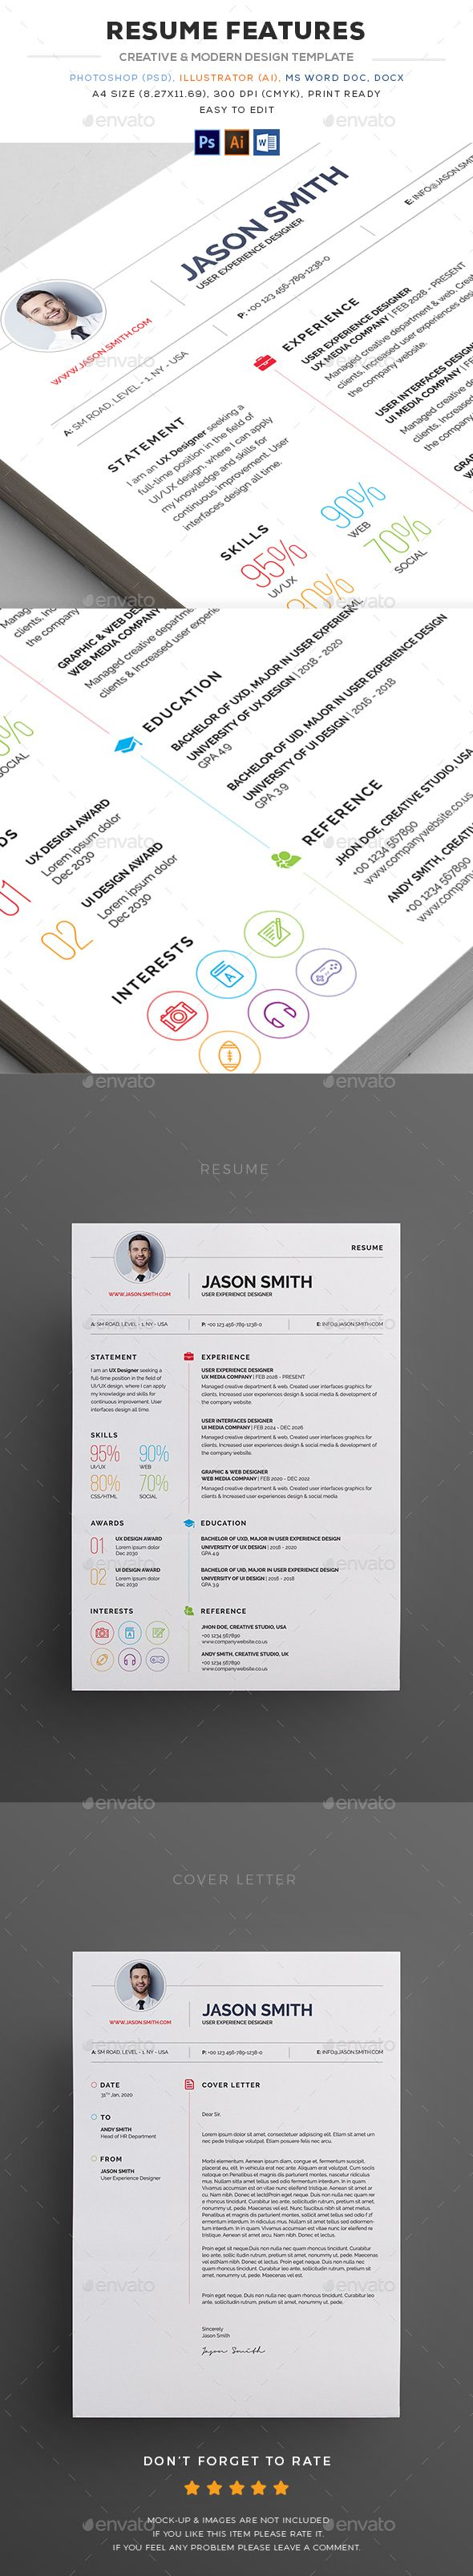 1007 best images about design resumes on pinterest